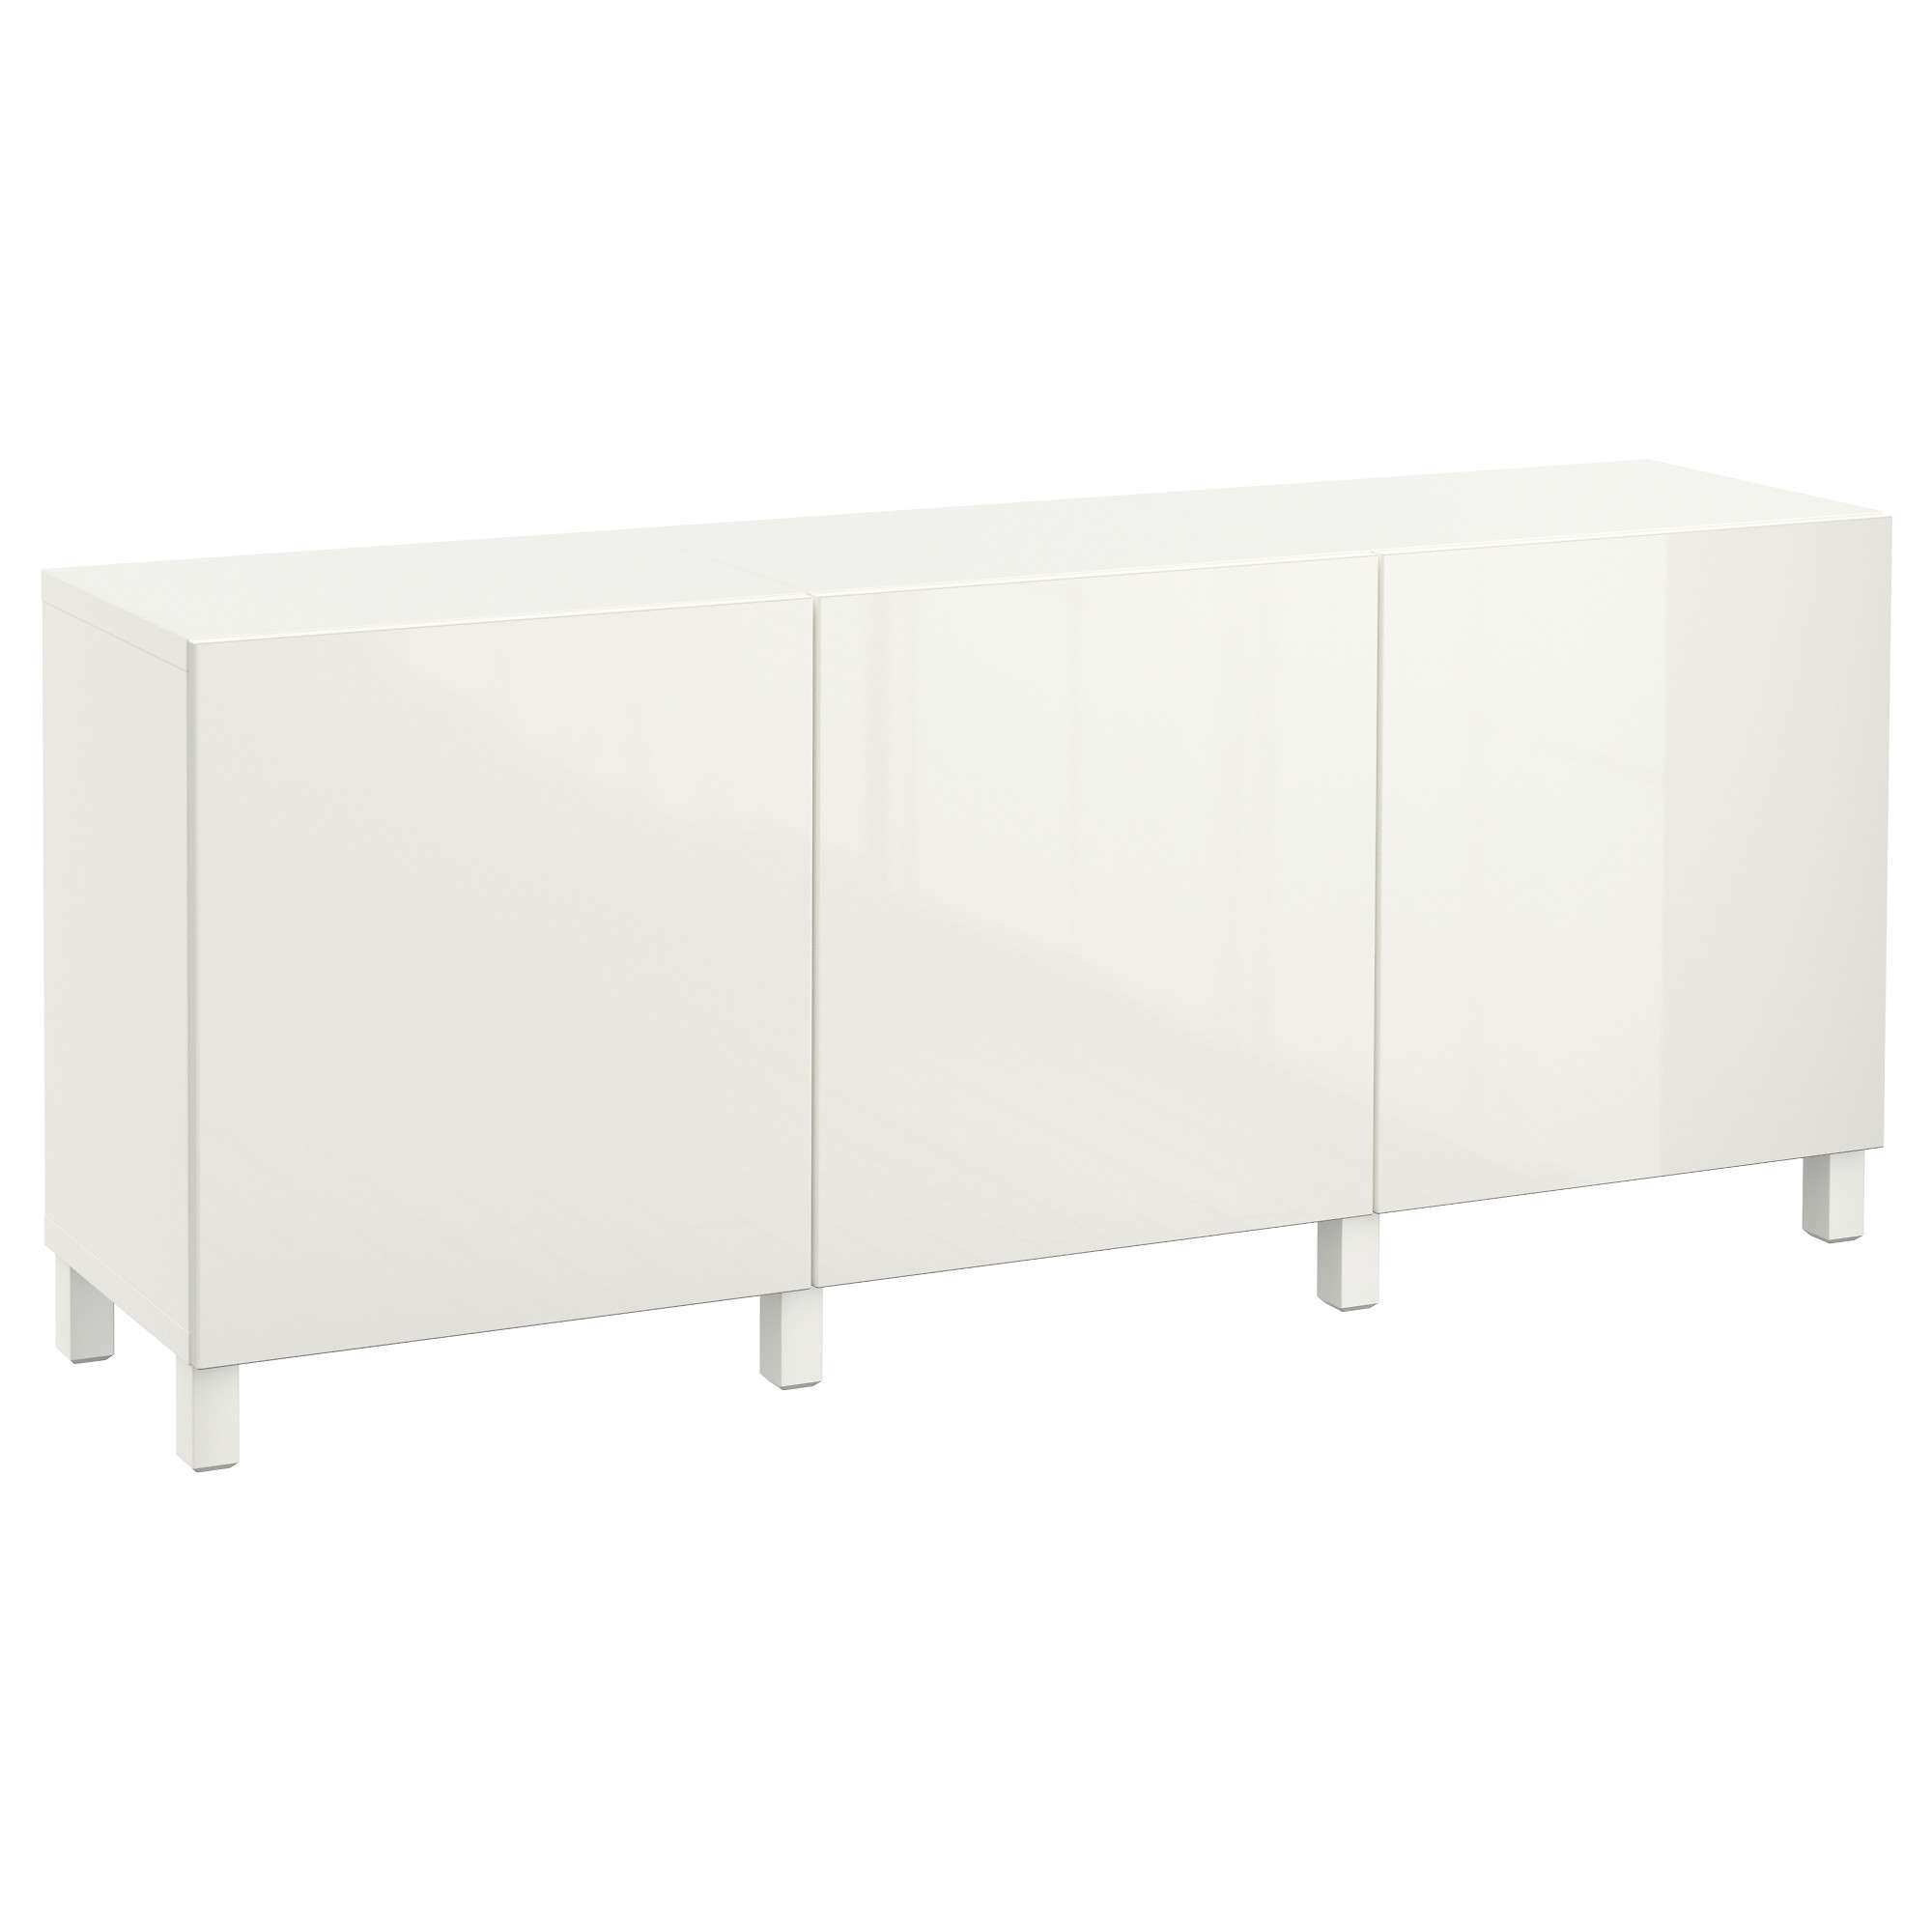 Buffet Mural Ikea Gallery Of Bureau Blanc Laque Ikea Collection Et